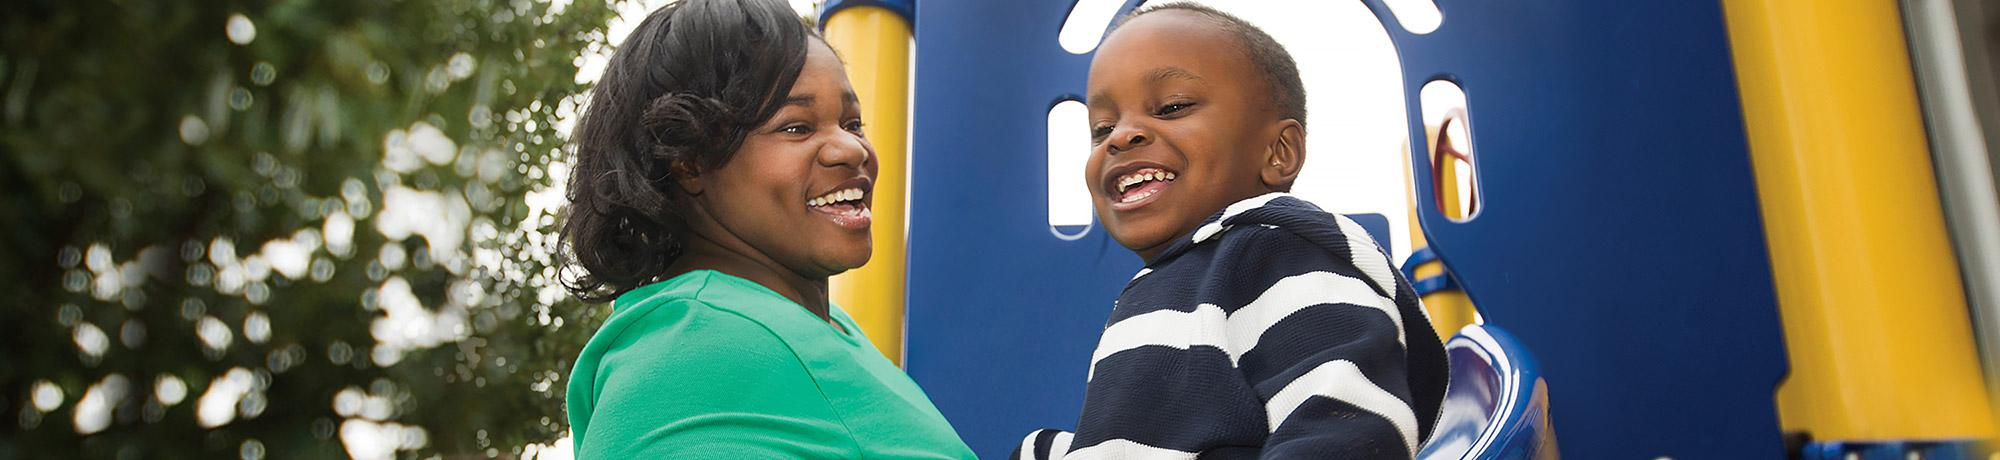 Young mother and son smiling at a playground.